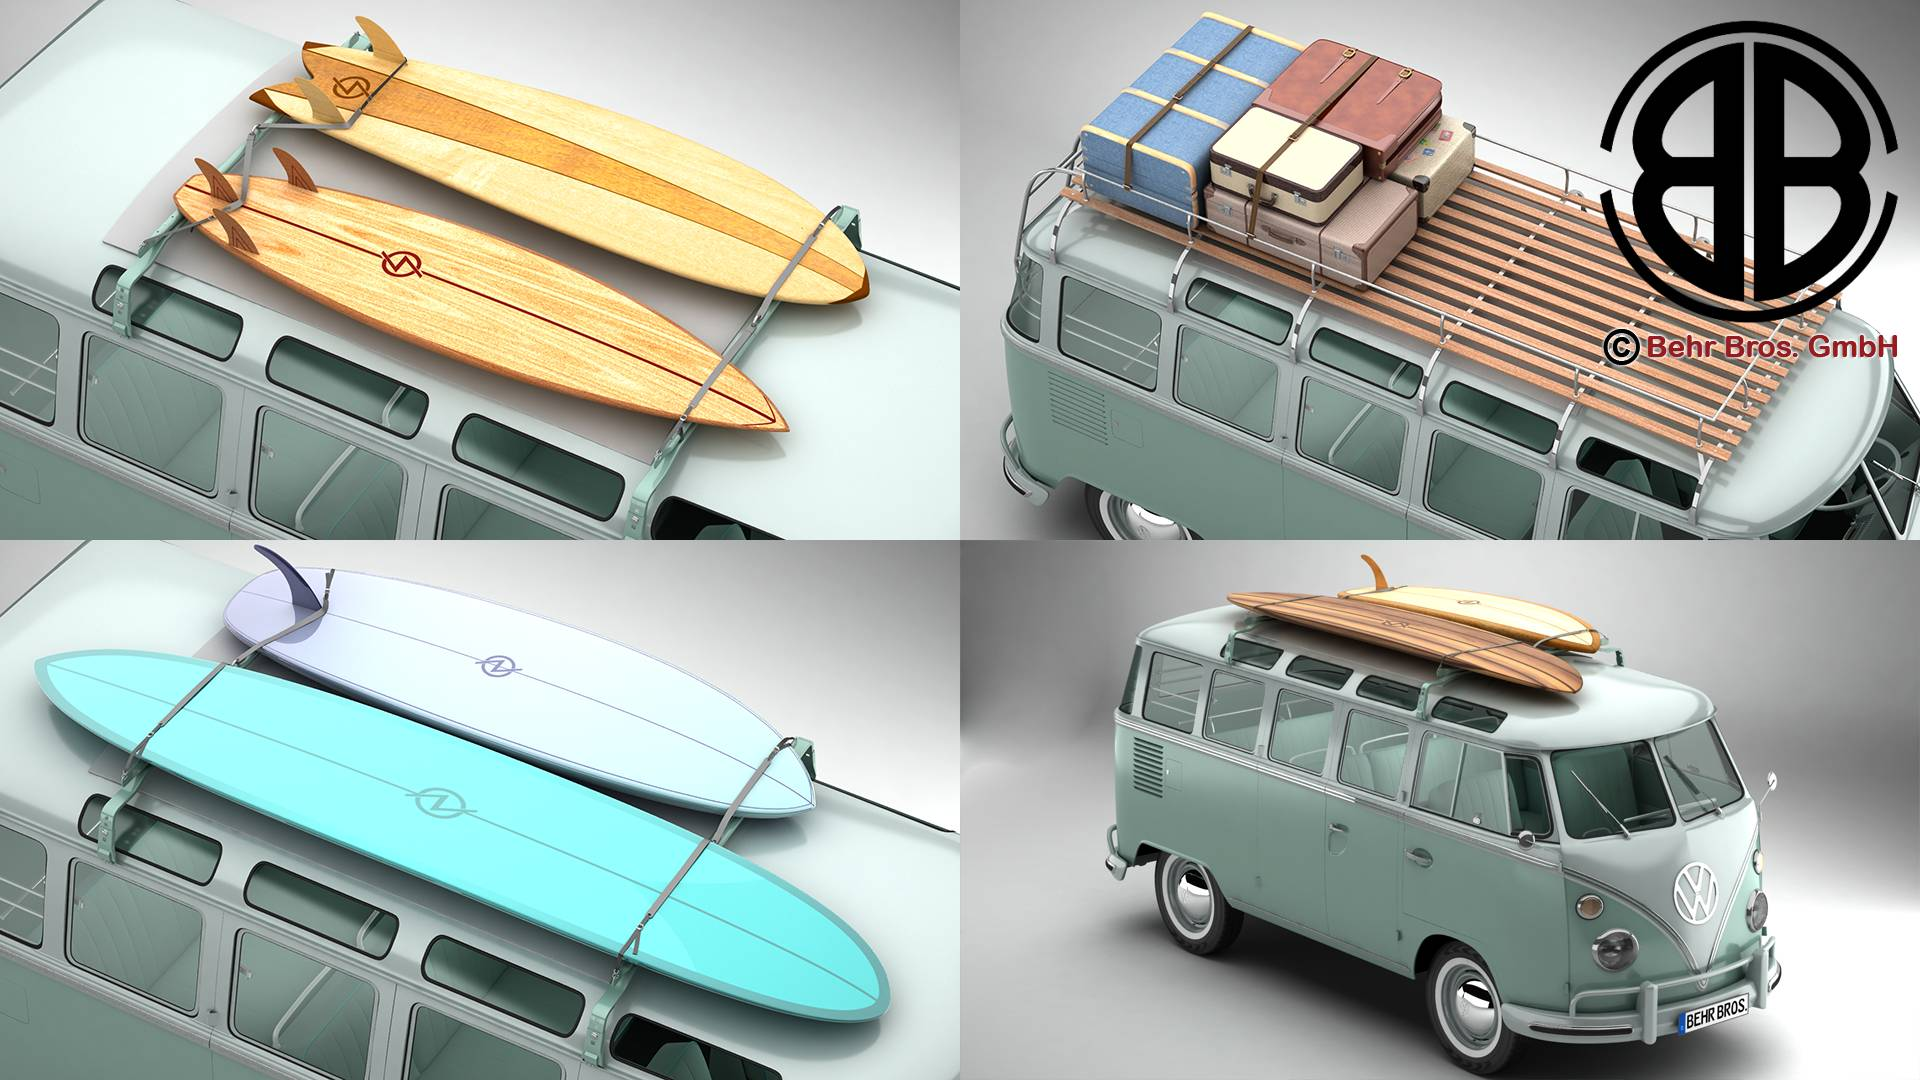 volkswagen t1 samba 1963 accessories 3d model 3ds max fbx c4d lwo ma mb obj 266807